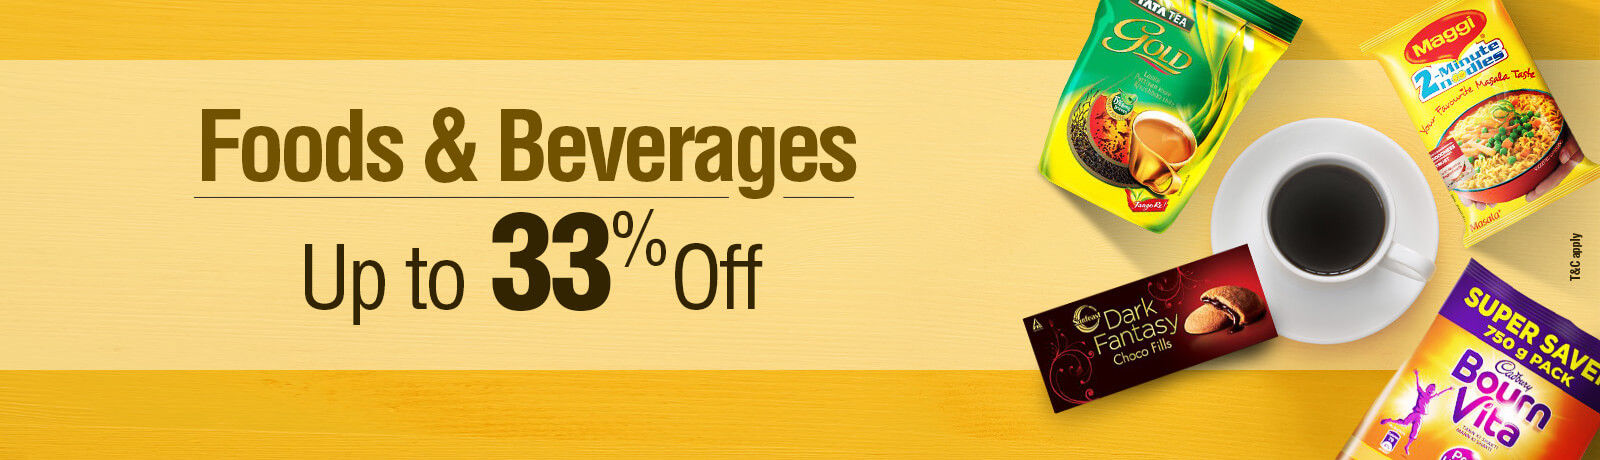 Food & Beverages up to 33% off